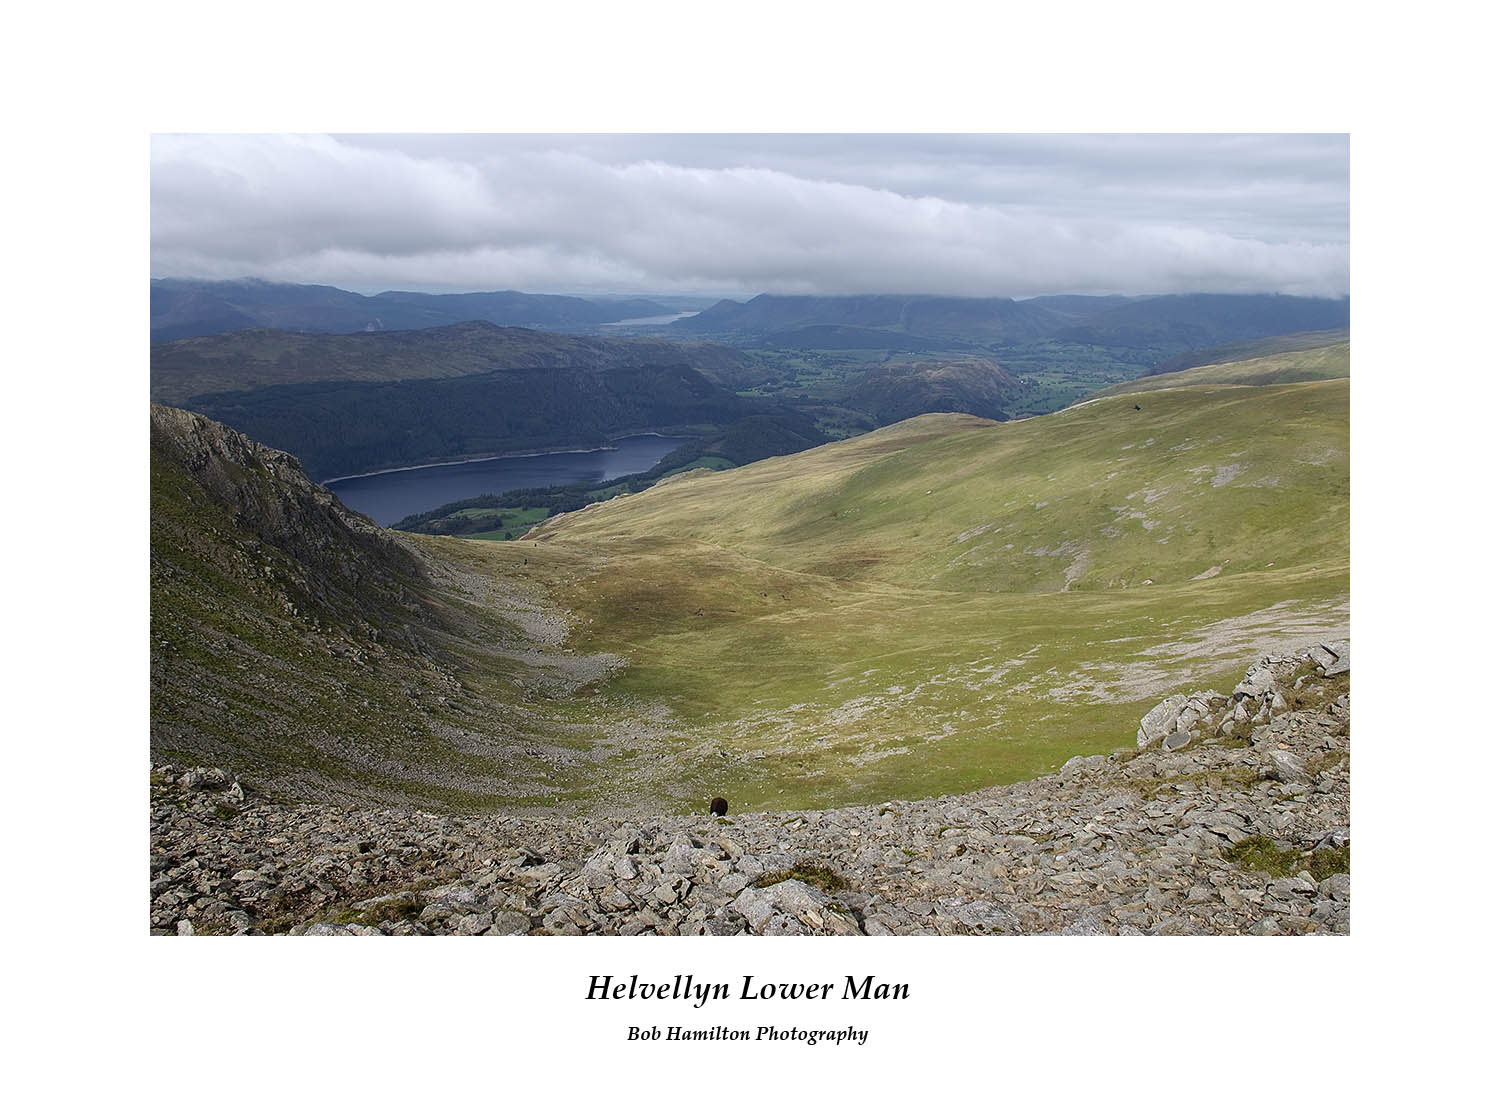 DSF1092 Browncove Crags and Thirlmere from Helvellyn Lower man